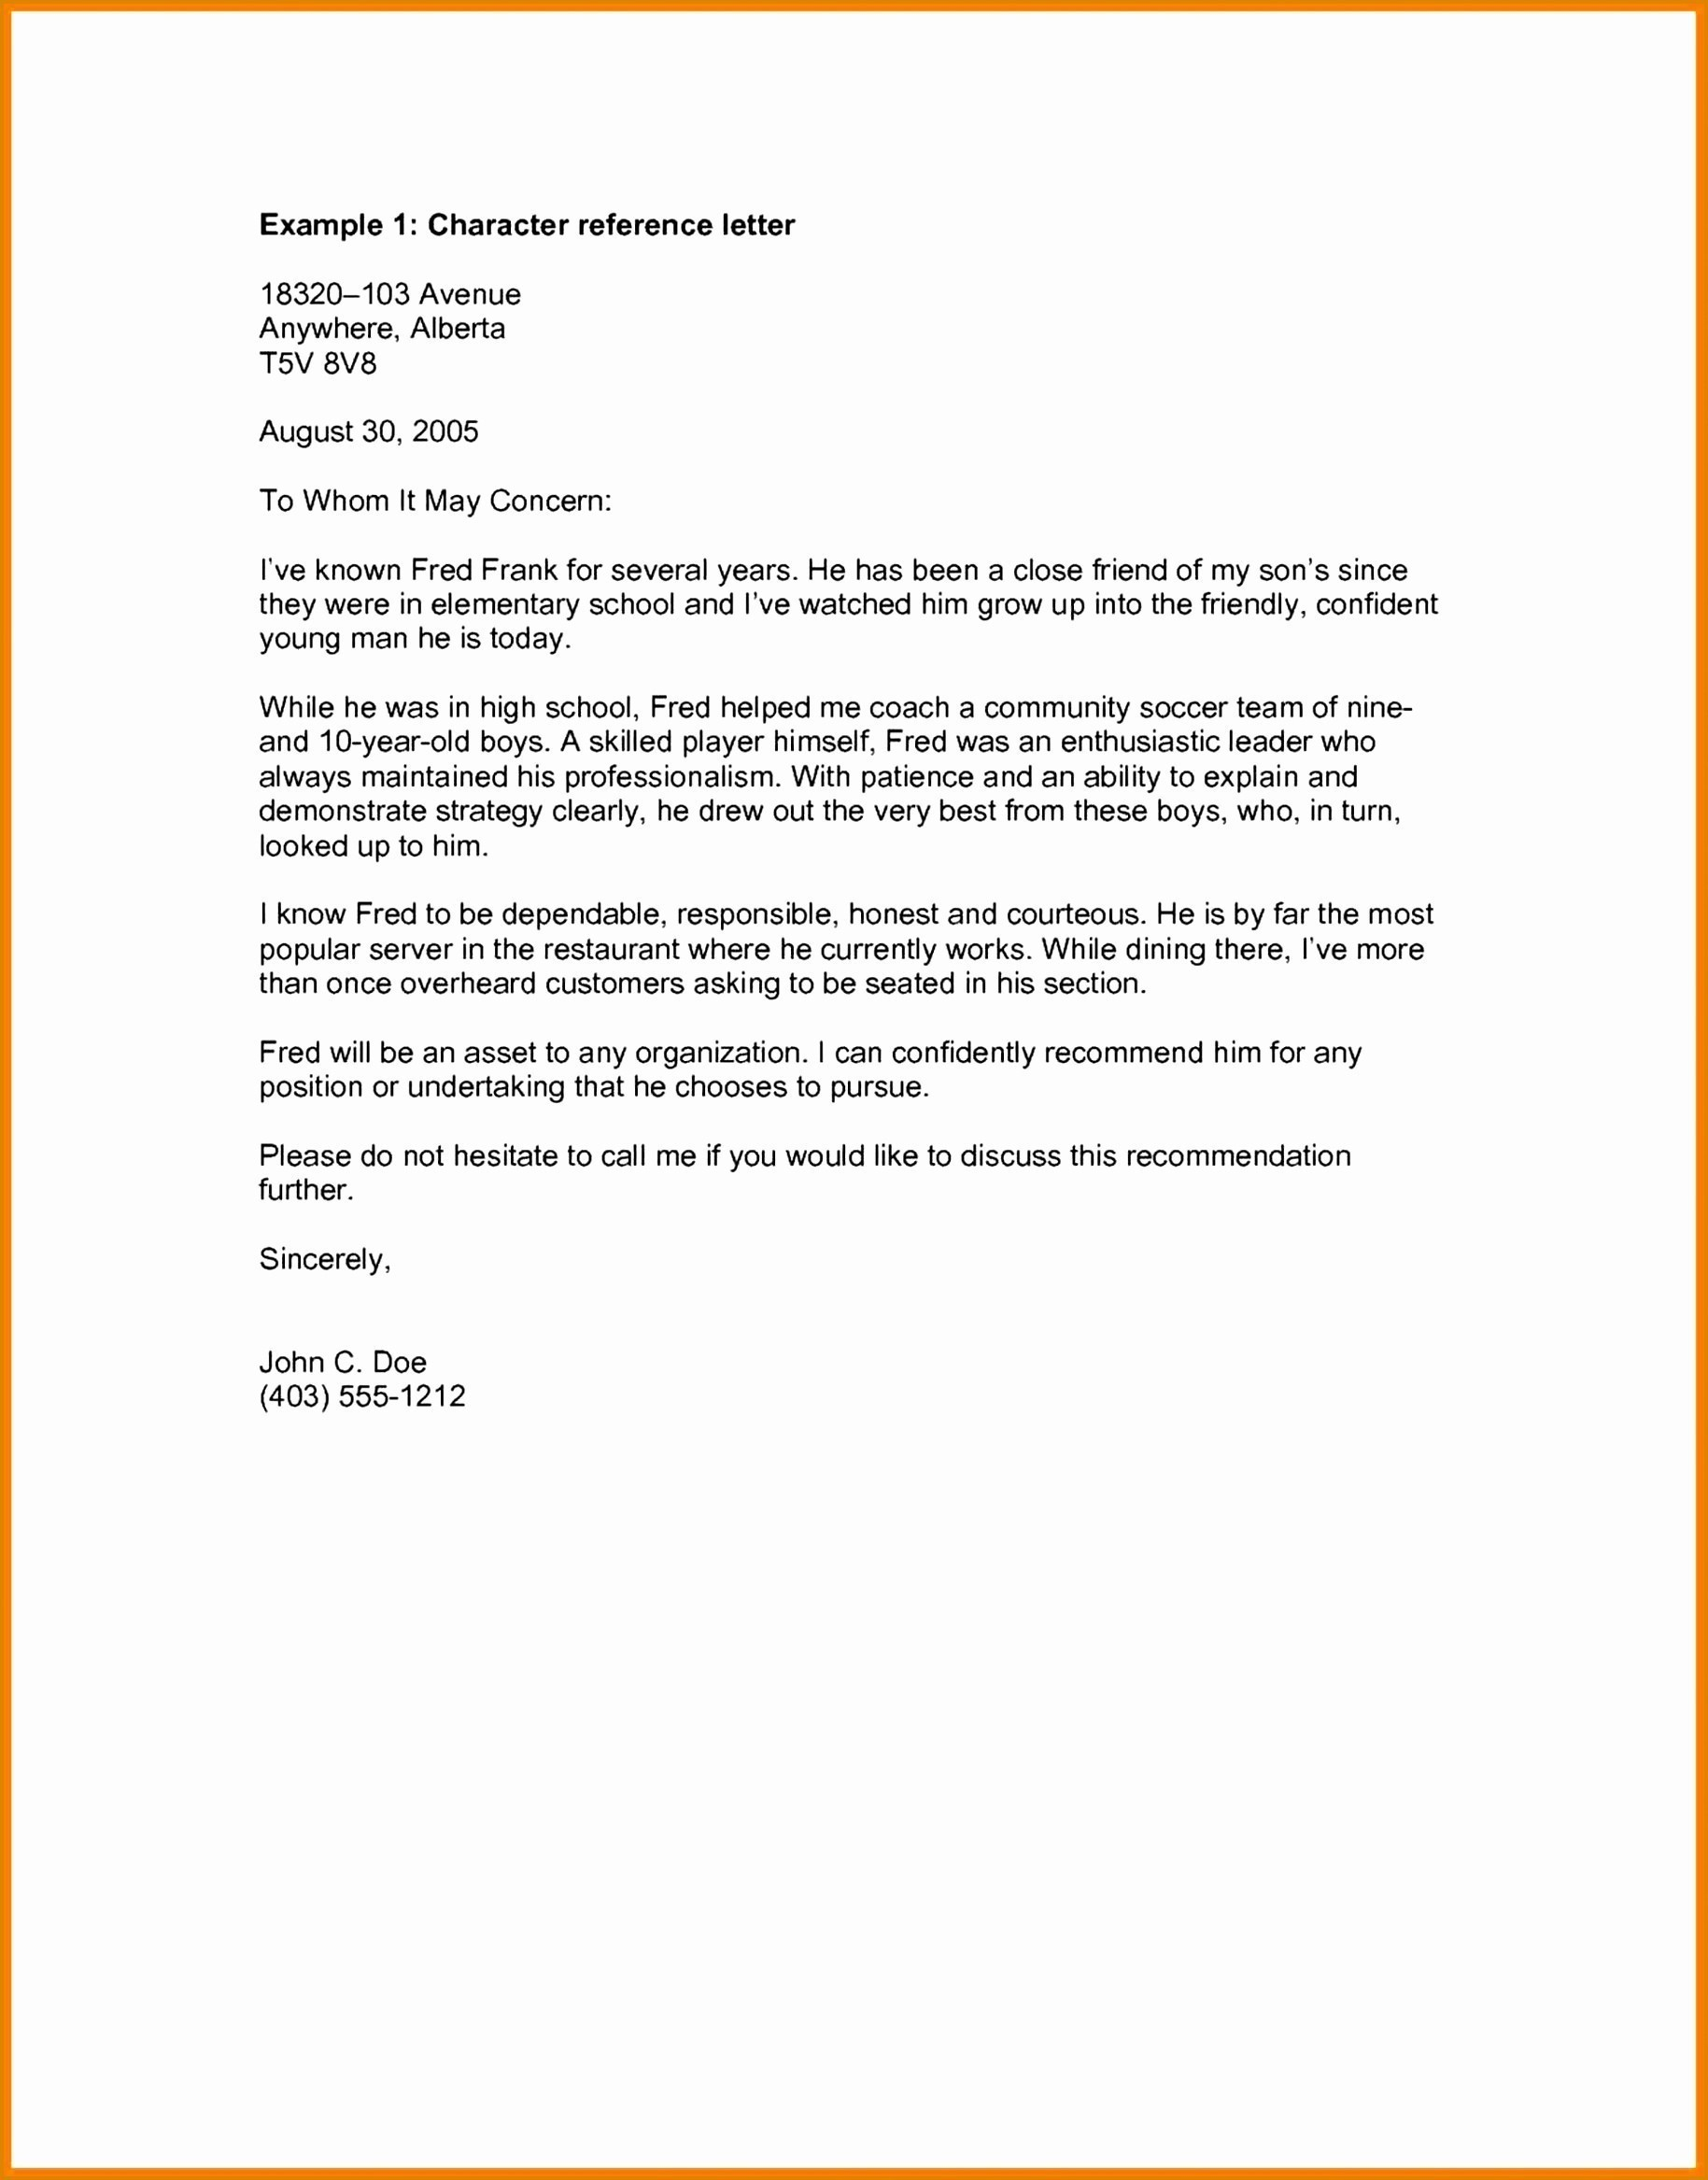 Letter Of Recommendation Request Template - Plaint Letter Template Refund Fresh Template References Letter